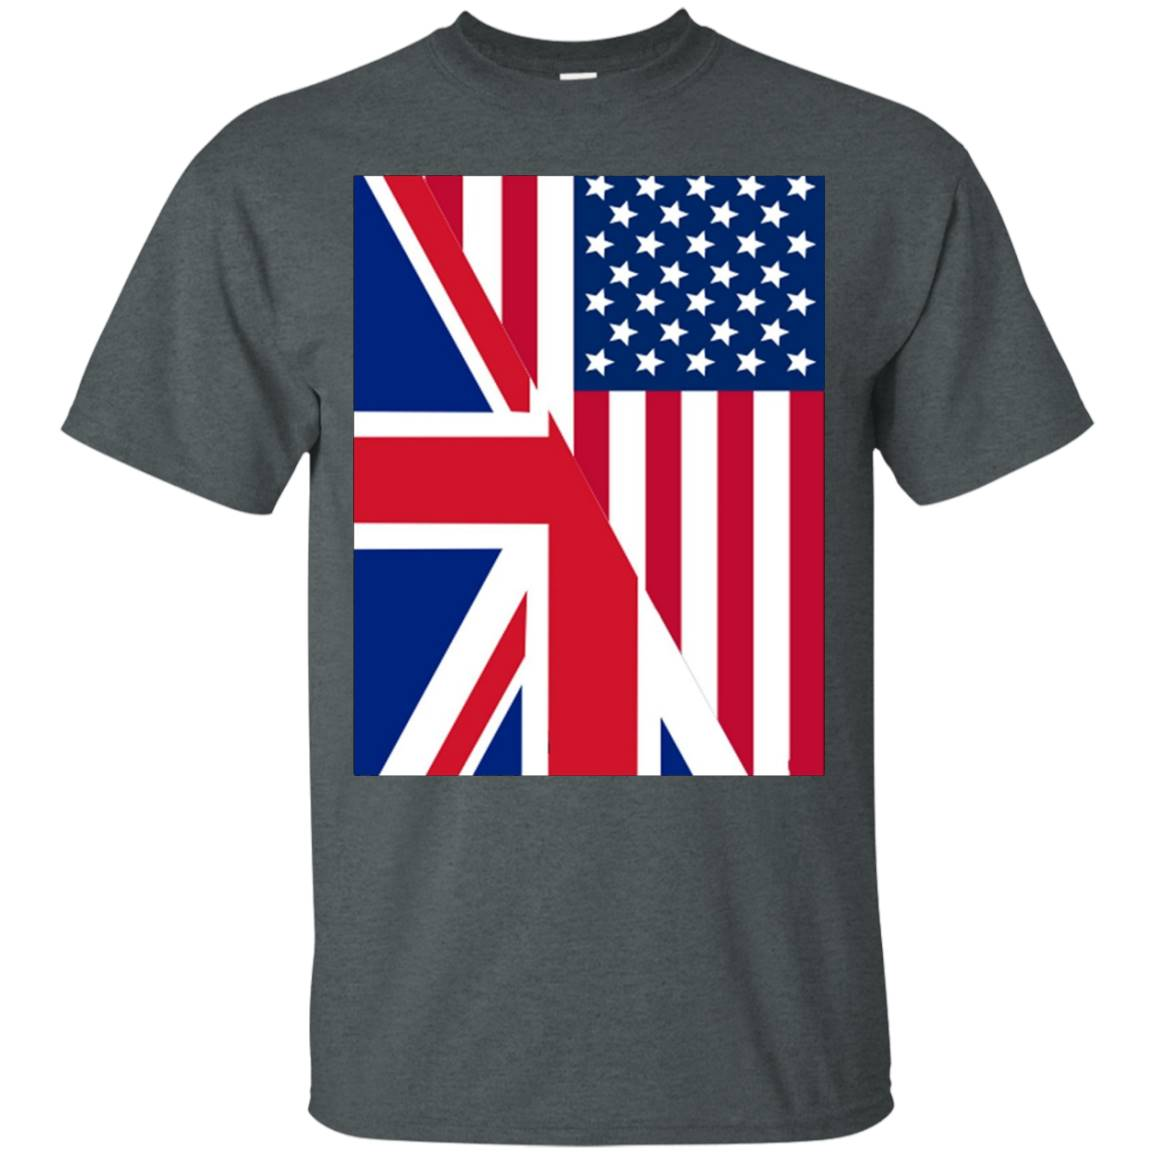 American and Union Jack Flag t-shirt – T-Shirt